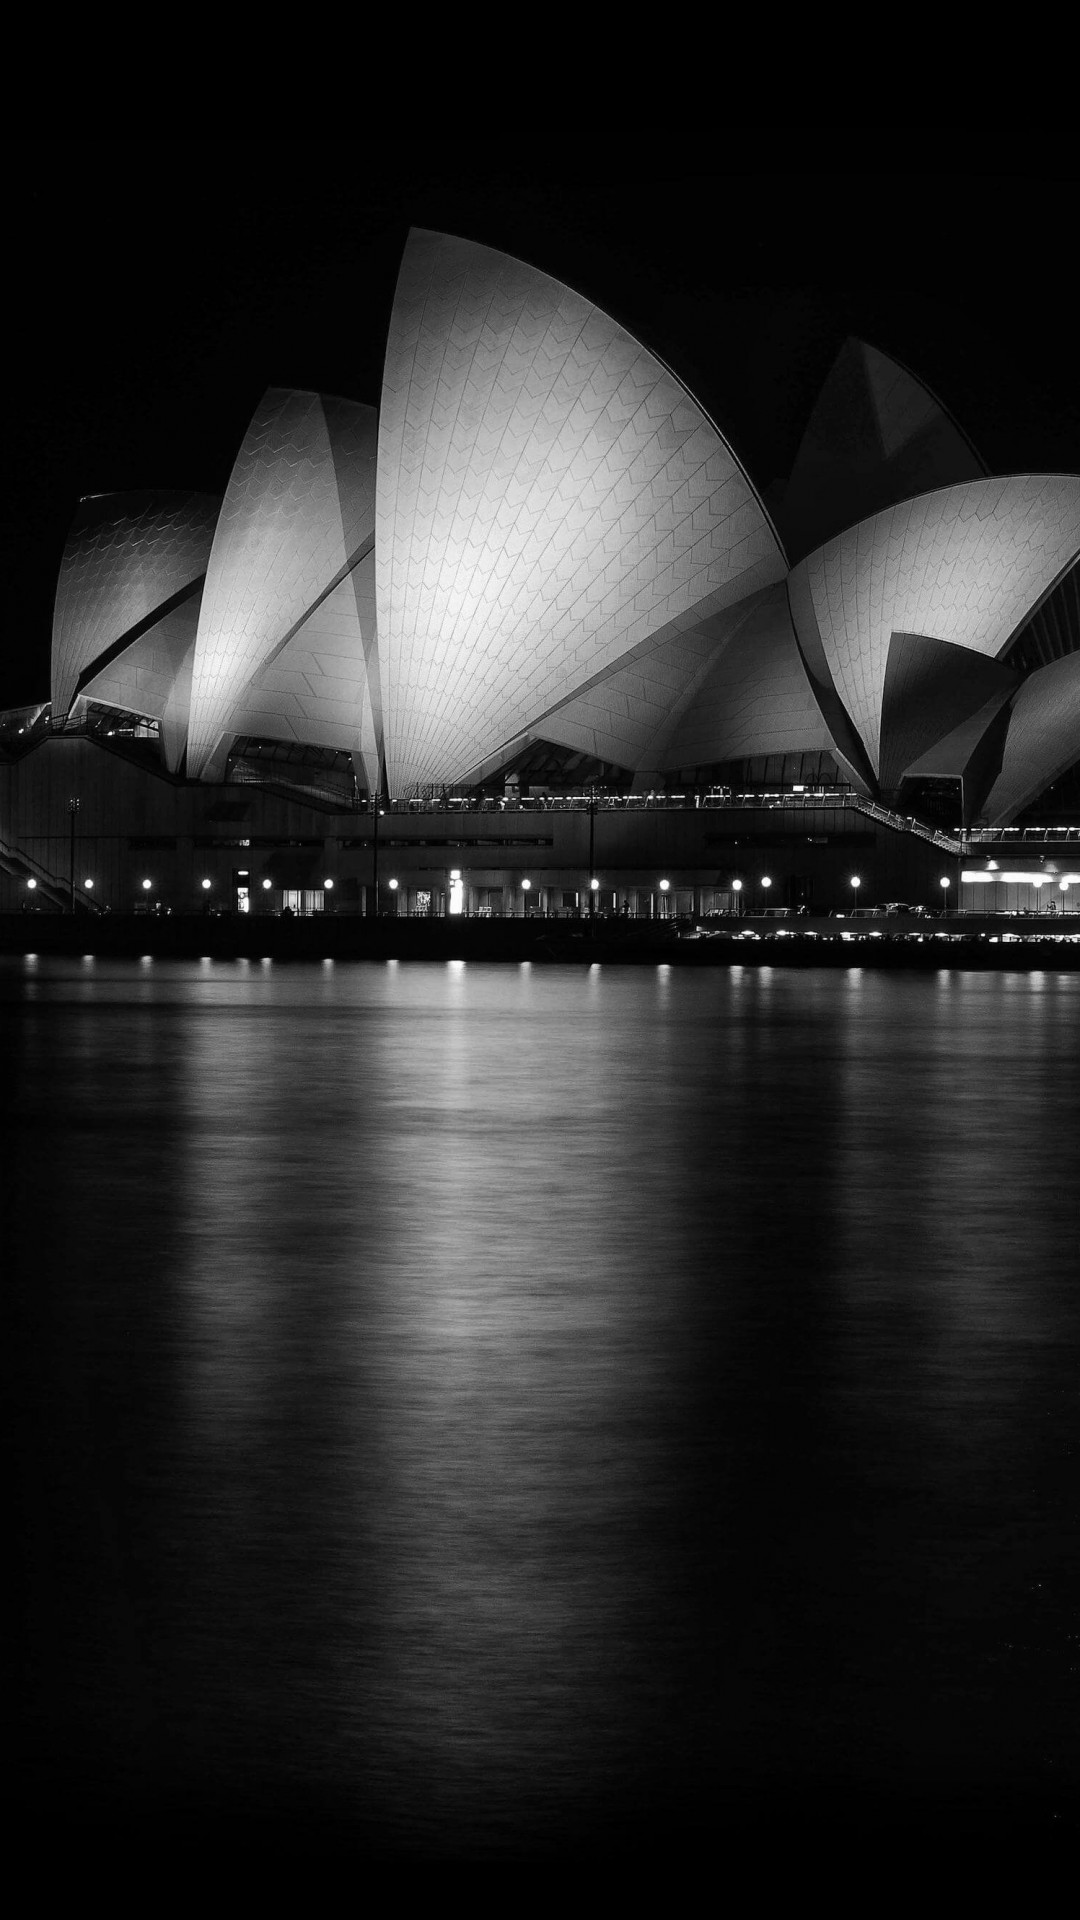 Sydney Opera House at Night in Black & White Wallpaper for SAMSUNG Galaxy S4